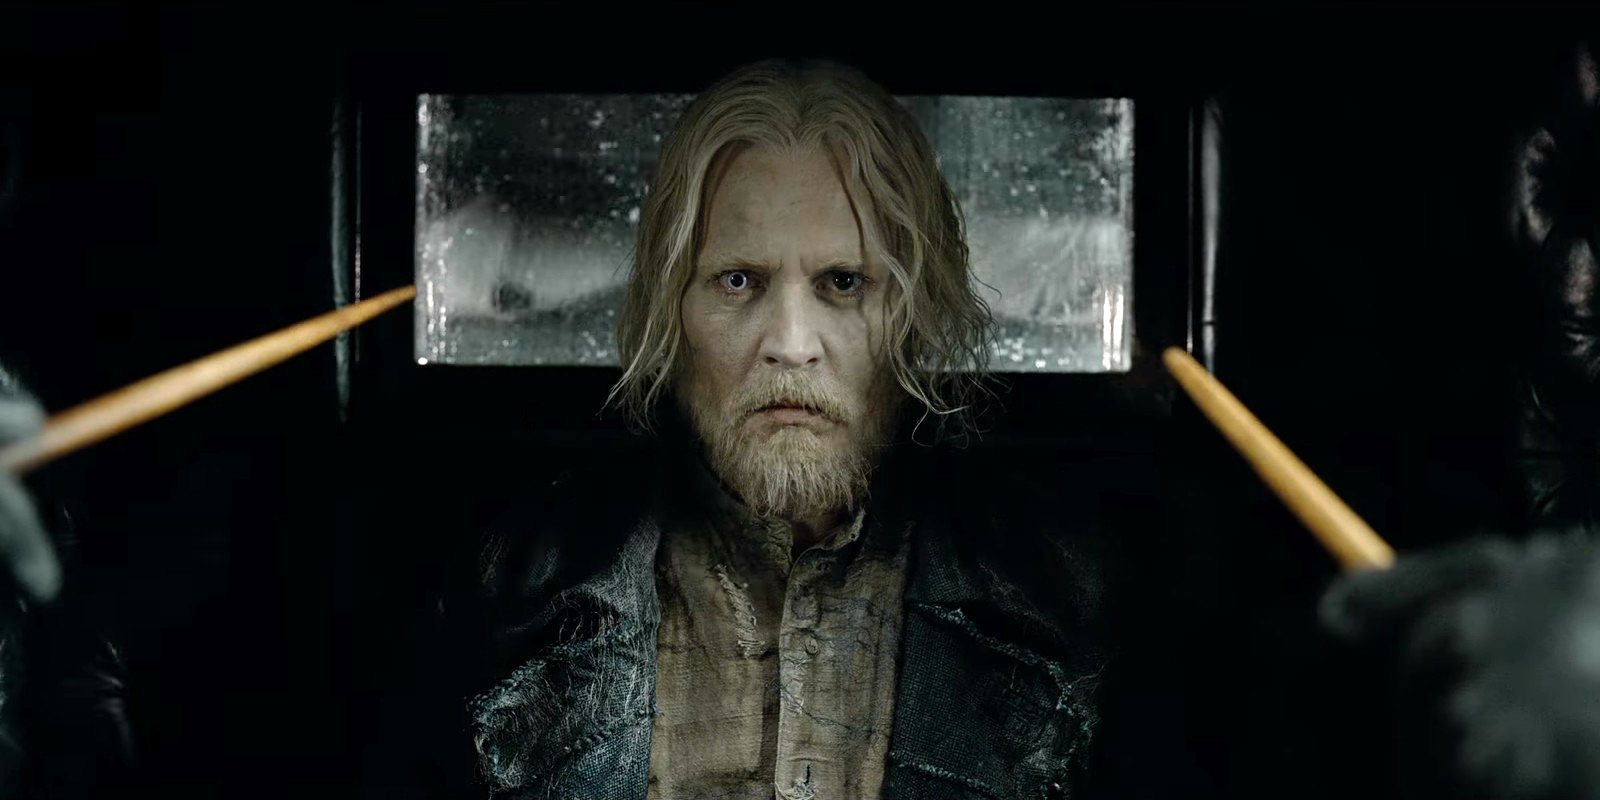 Johnny Depp as Grindelwald in Fantastic Beasts 2